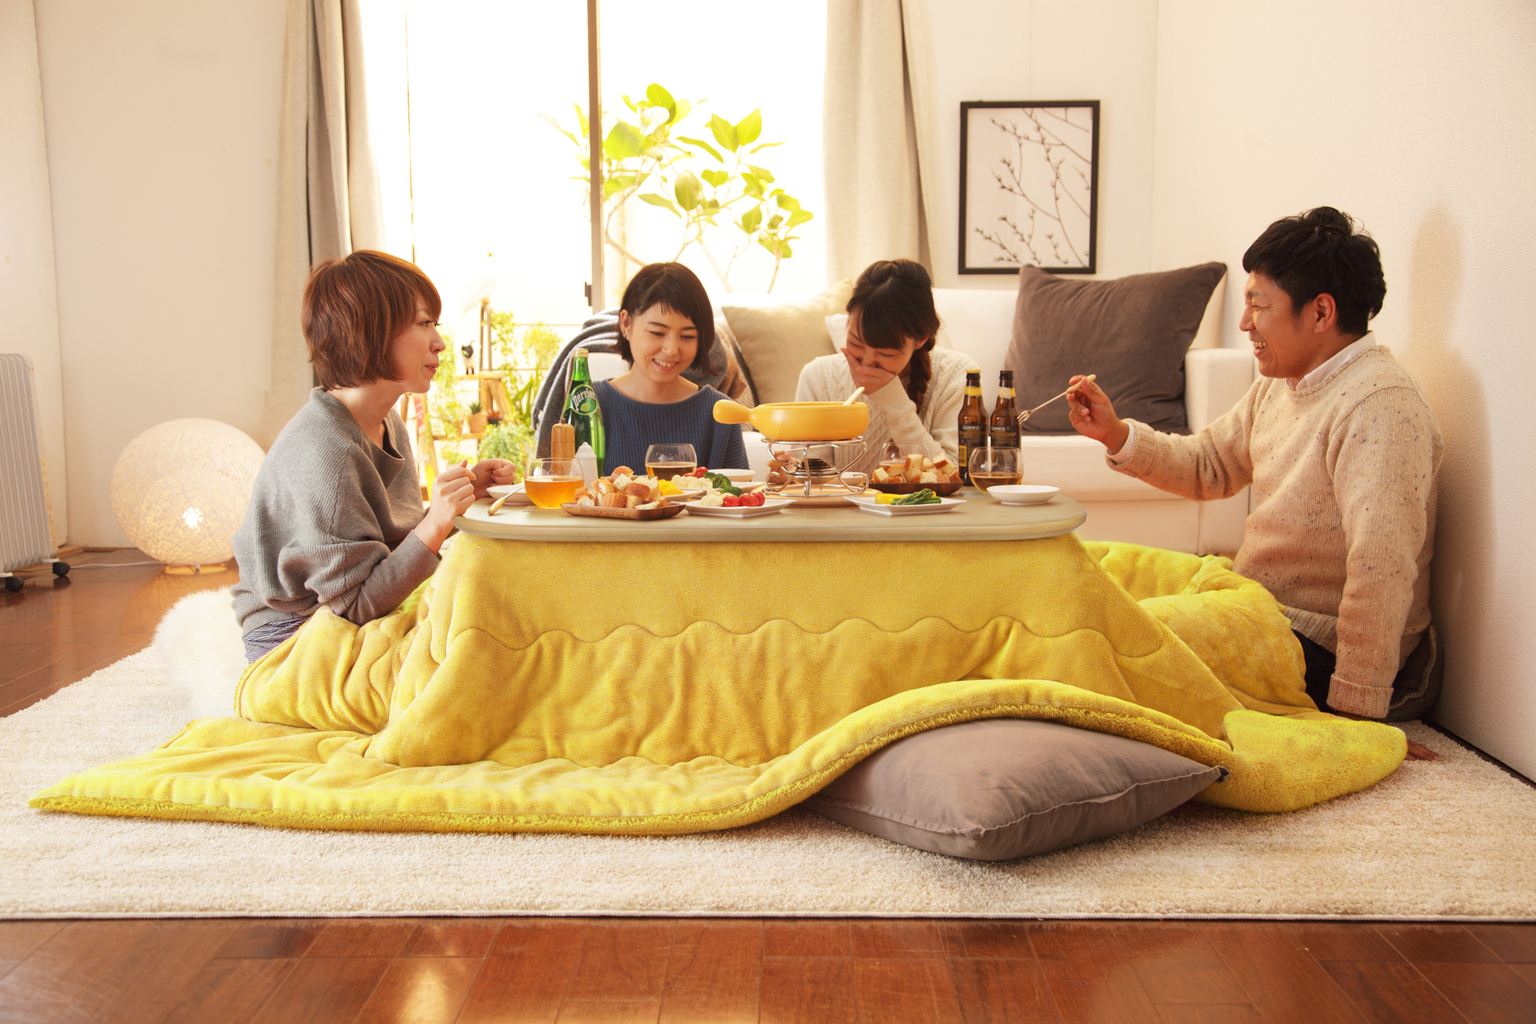 Kotatsu Dining For Winter At Restaurants On A Train And